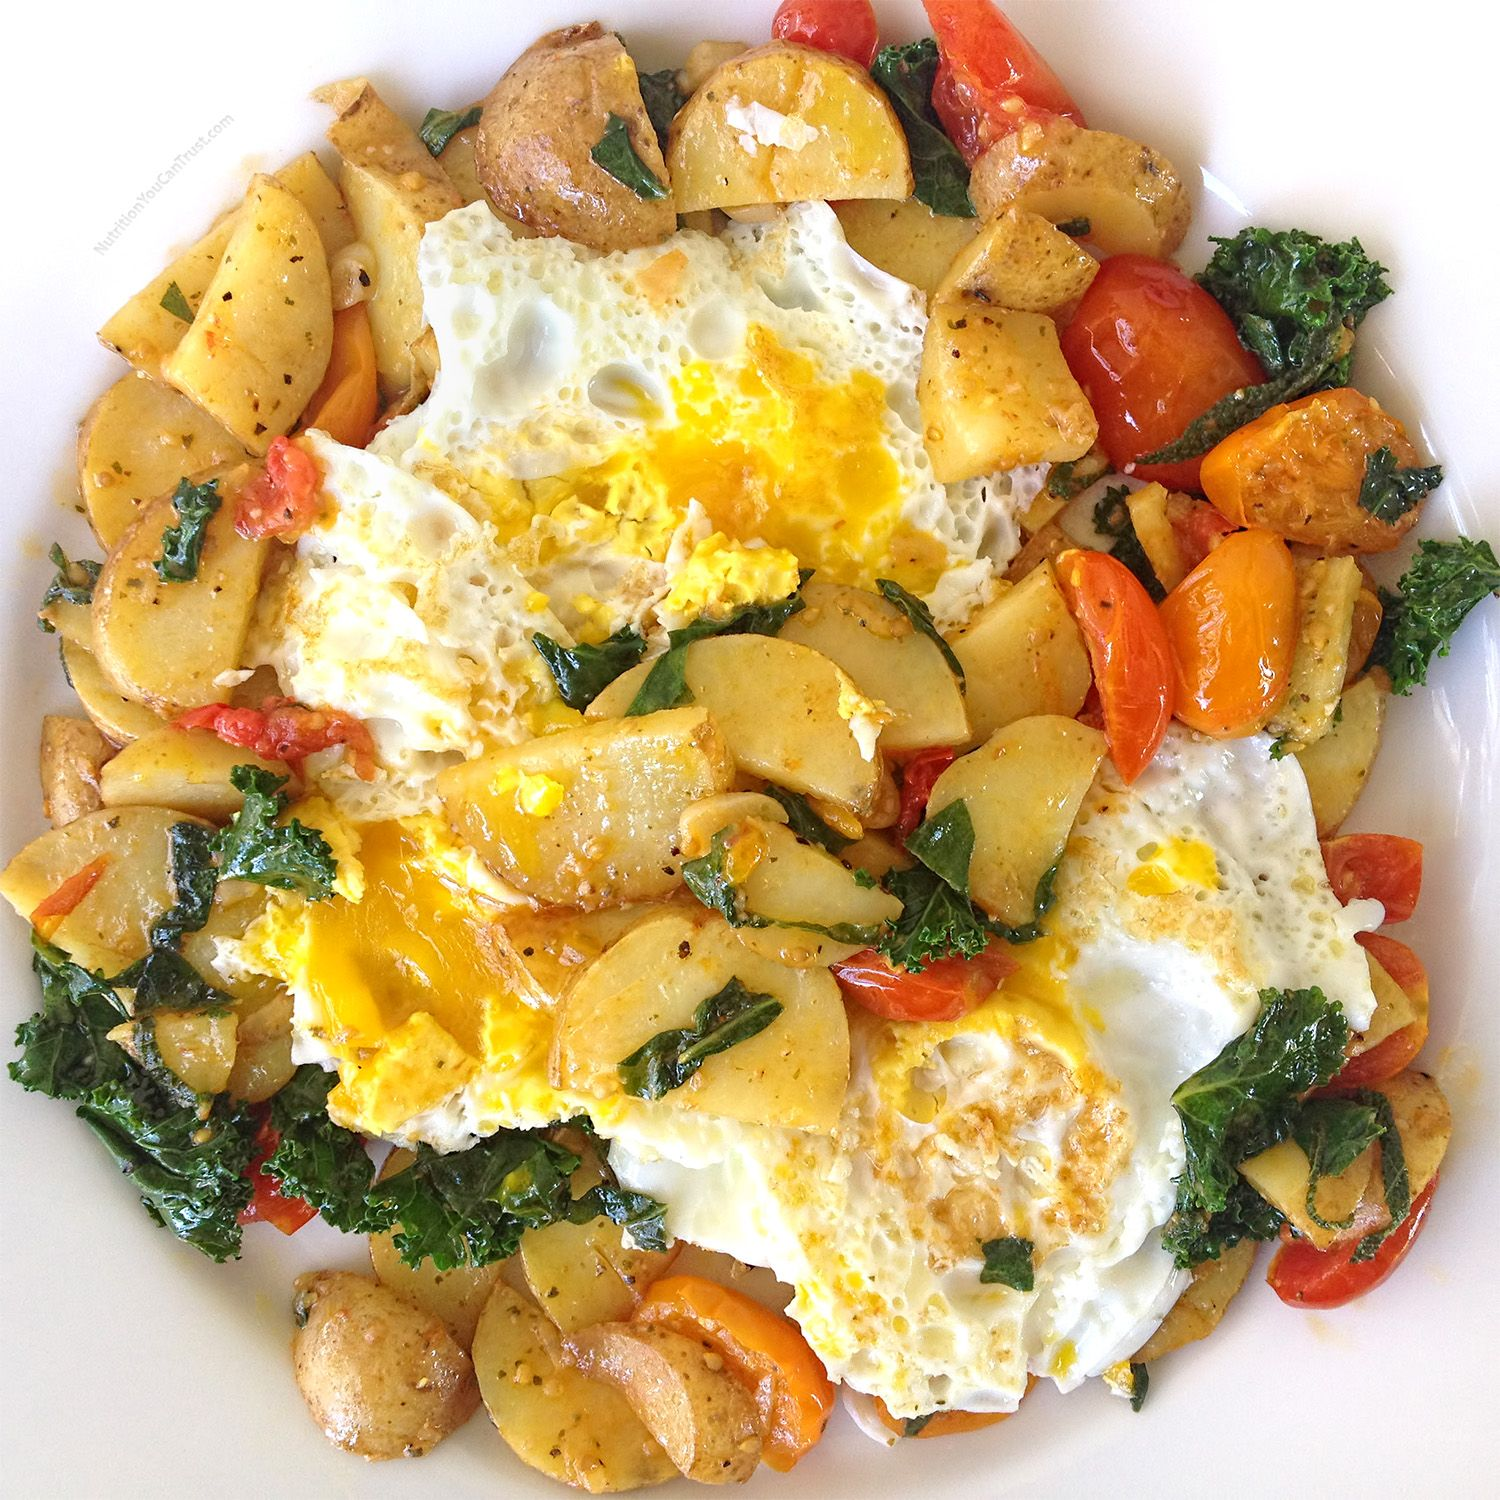 Veggie Hash consisting of potatoes, rainbow cherry tomatoes, #gardentotable kale & herbs and topped off with coconut oil fried #pastured eggs.  #local #organic #realfood #breakfast #inspo